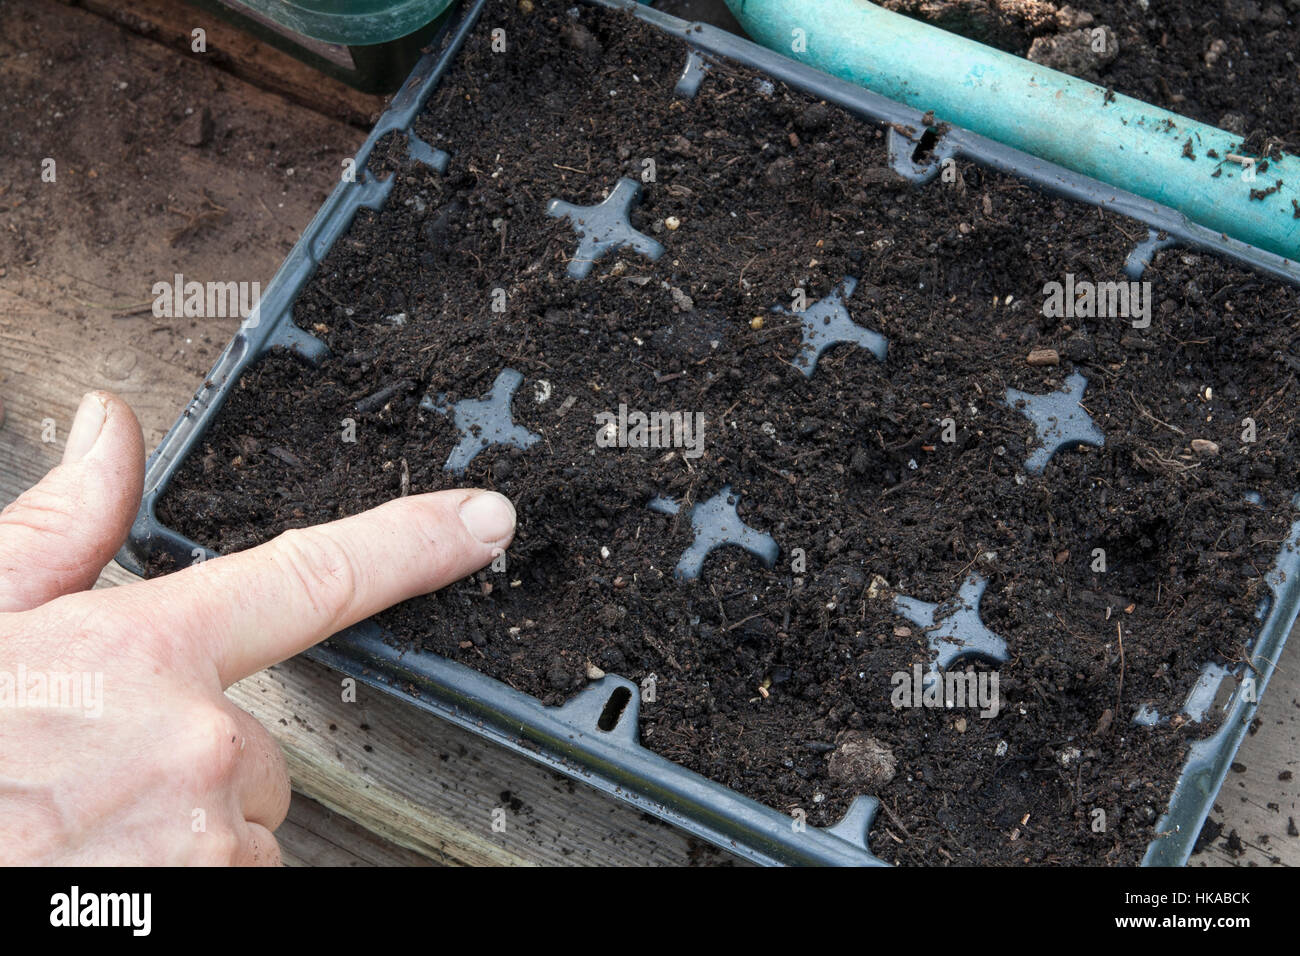 Sowing radicchio into modules step-by-step. Step # 3 Covering seeds - Stock Image